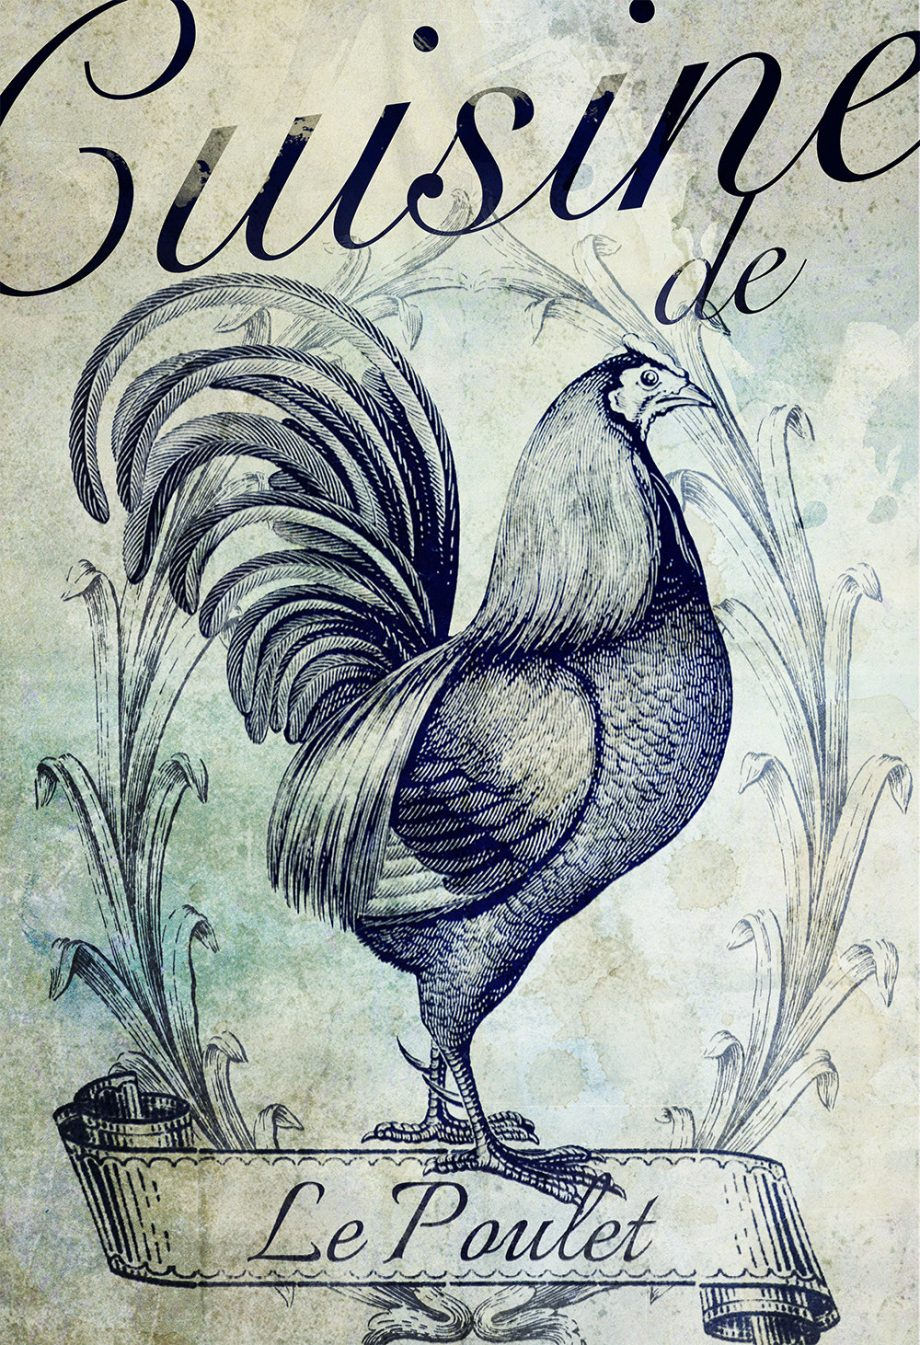 french-kitchen-decor-rooster-art-rustic-farmhouse-giclee-large-print-on-satin-or-cotton-canvas-poster-home-wall-art-5817abbd3.jpg